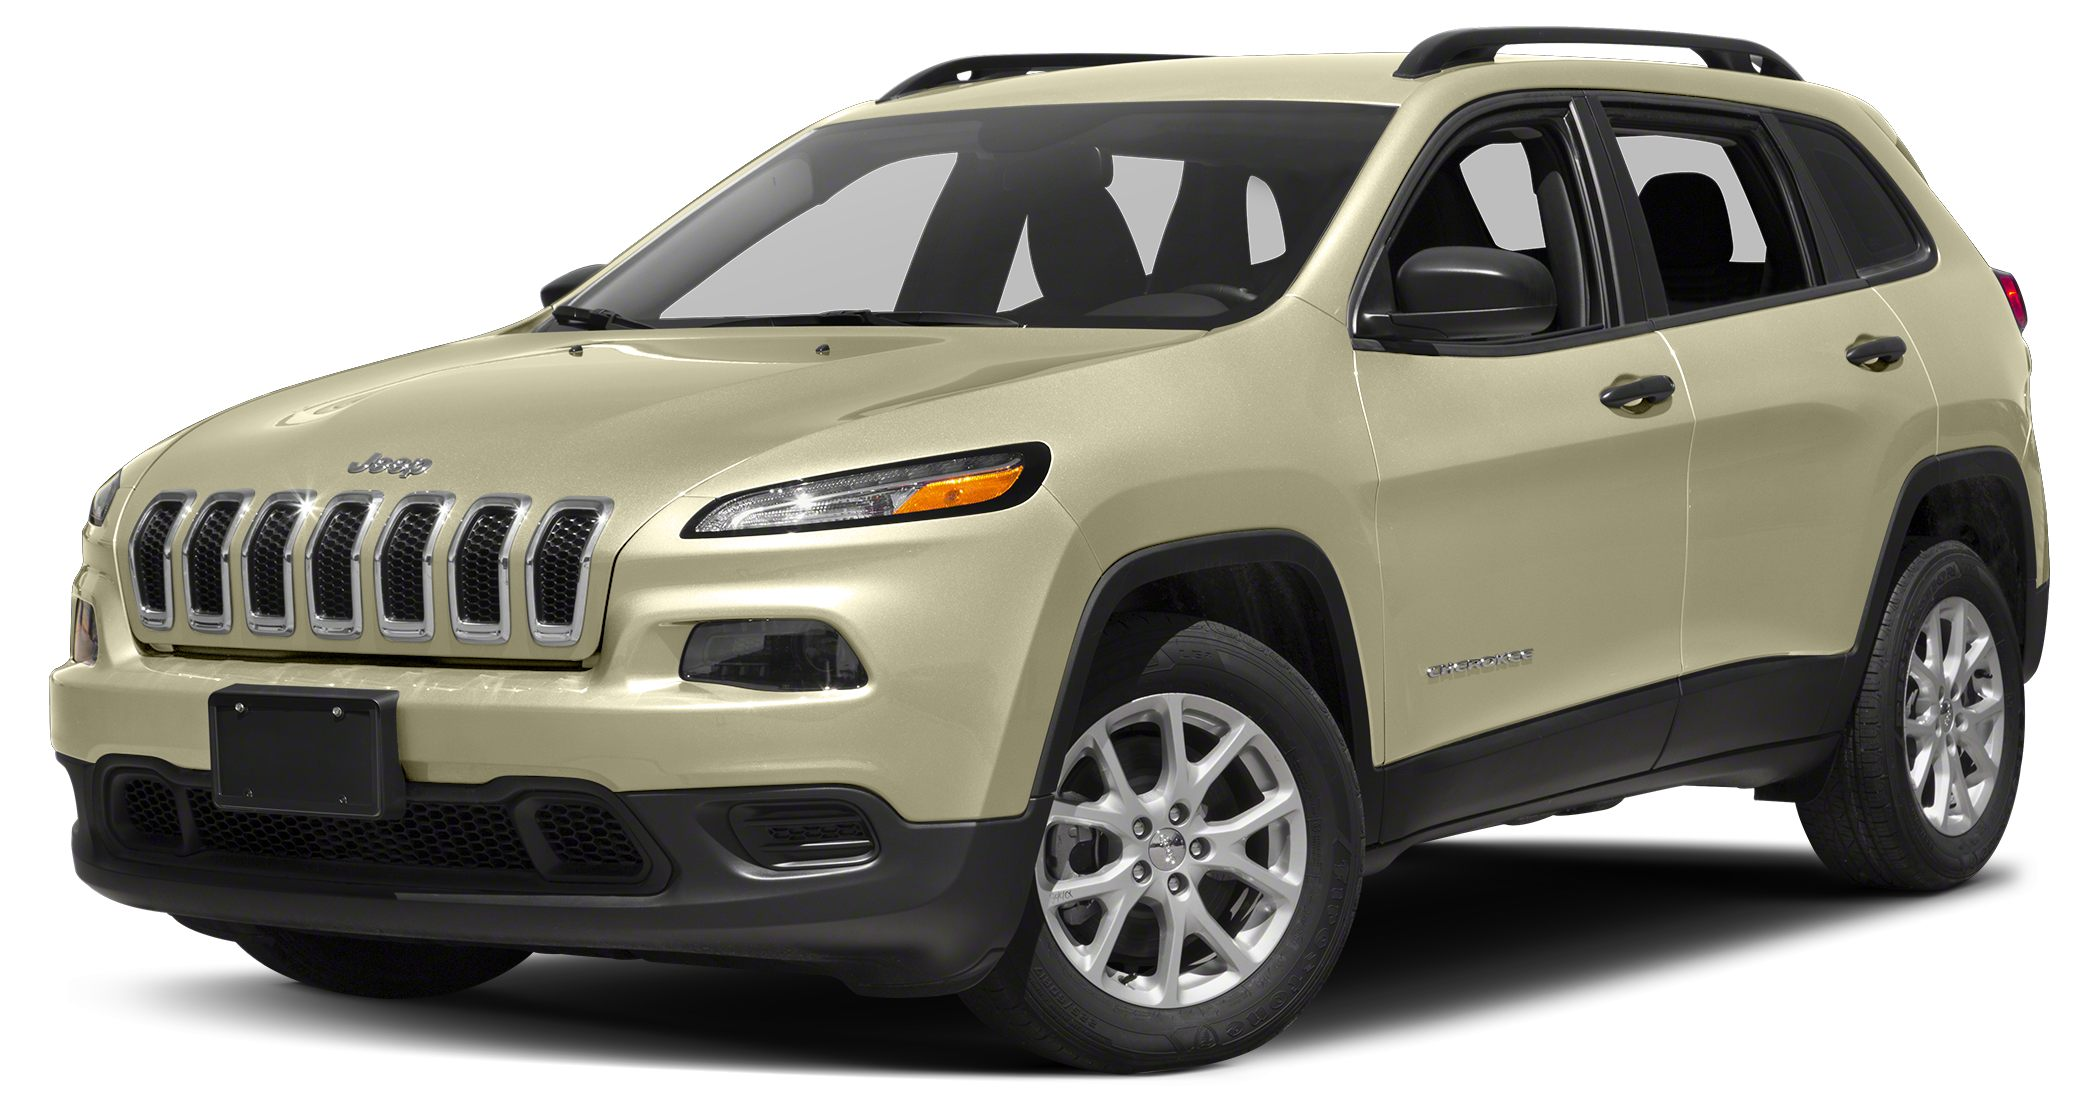 2014 Jeep Cherokee Sport Looking for a clean well-cared for 2014 Jeep Cherokee This is itThis J